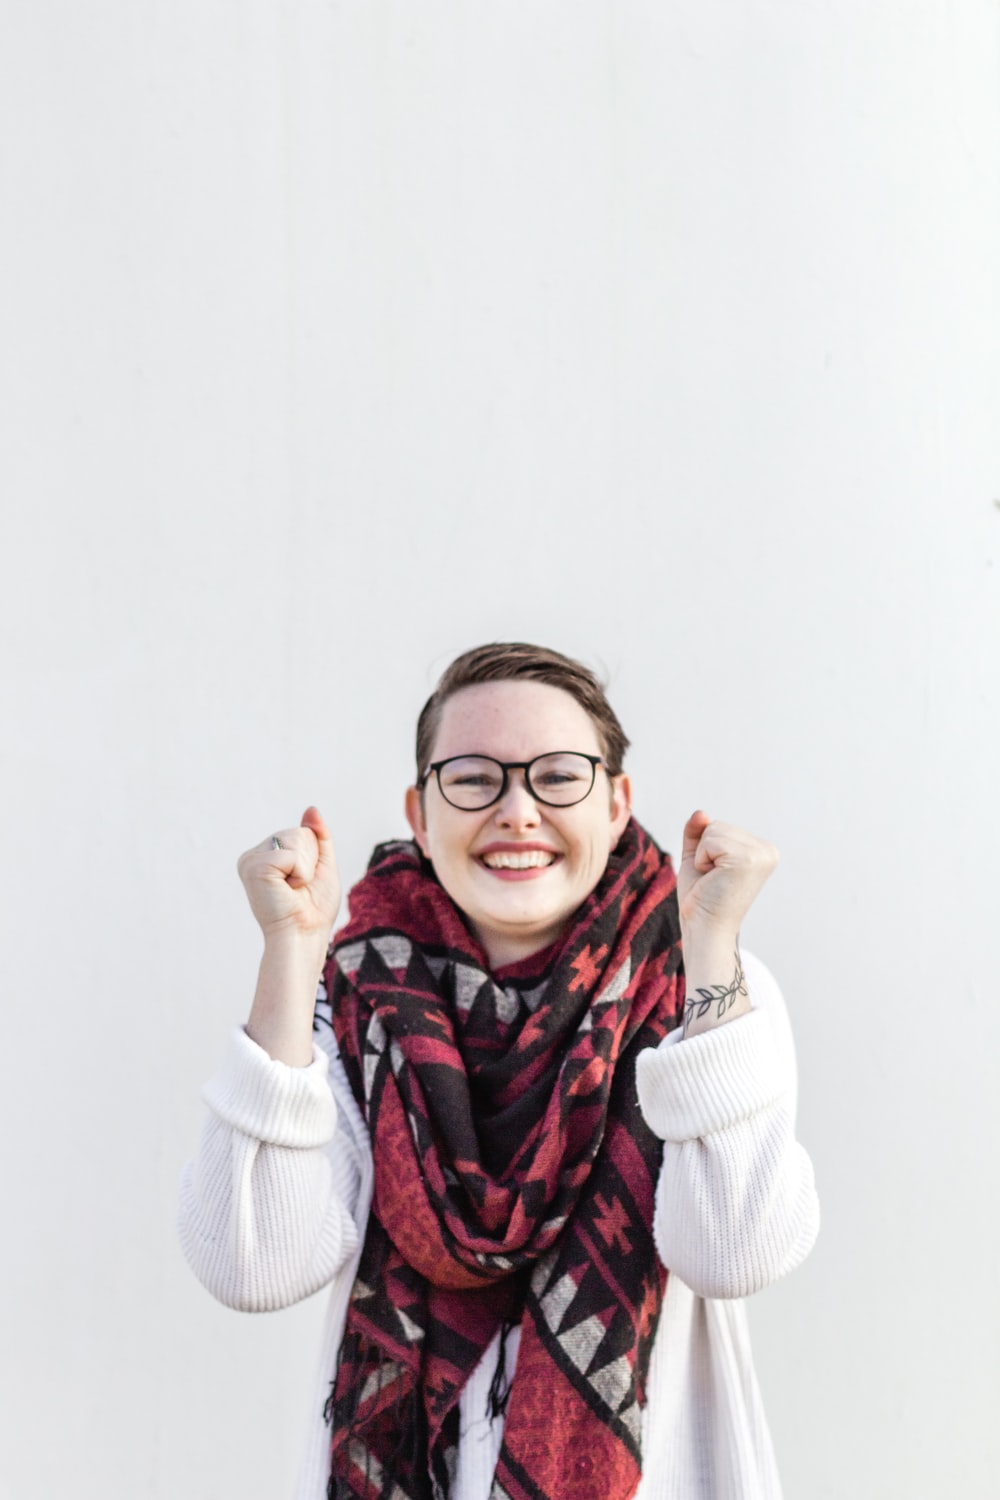 woman in white sweater wearing red scarf and black framed eyeglasses